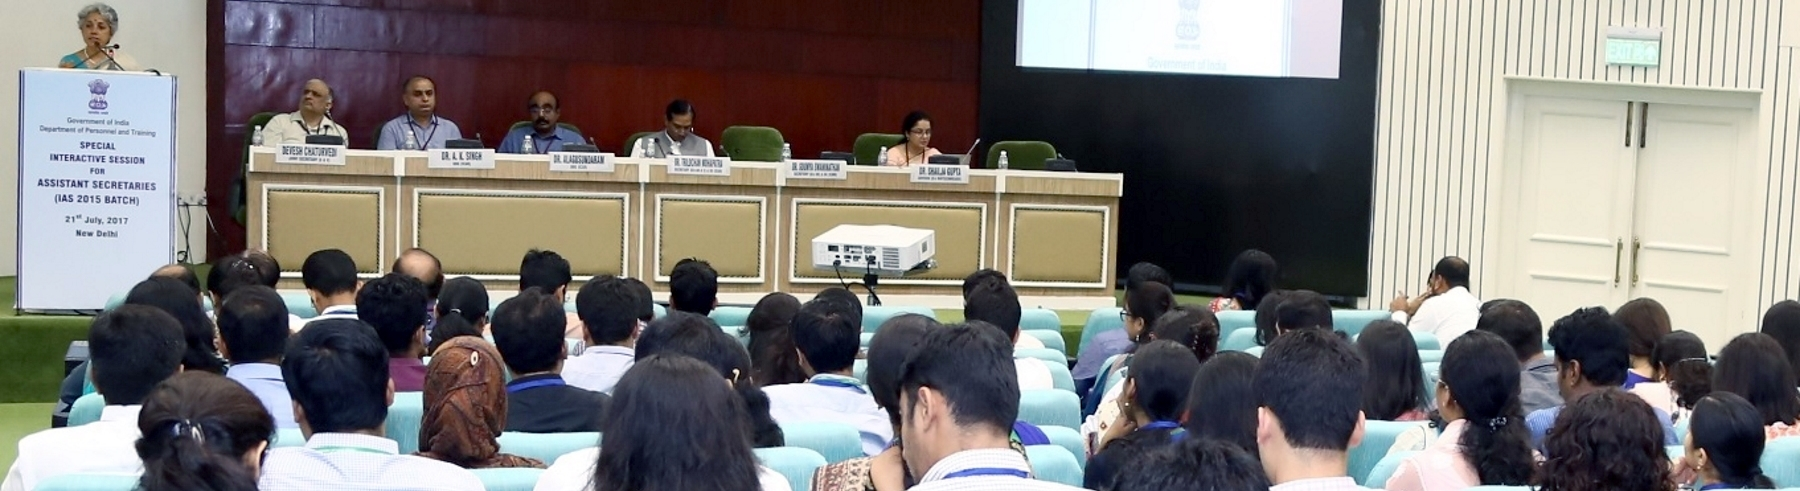 Ms. Soumya Swaminathan, Secretary (D/o Health Research) & DG (ICMR) interacting with the Assistant Secretaries (IAS officers of 2015 batch) in an interactive session held on 21.07.2017 at Vigyan Bhawan, New Delhi